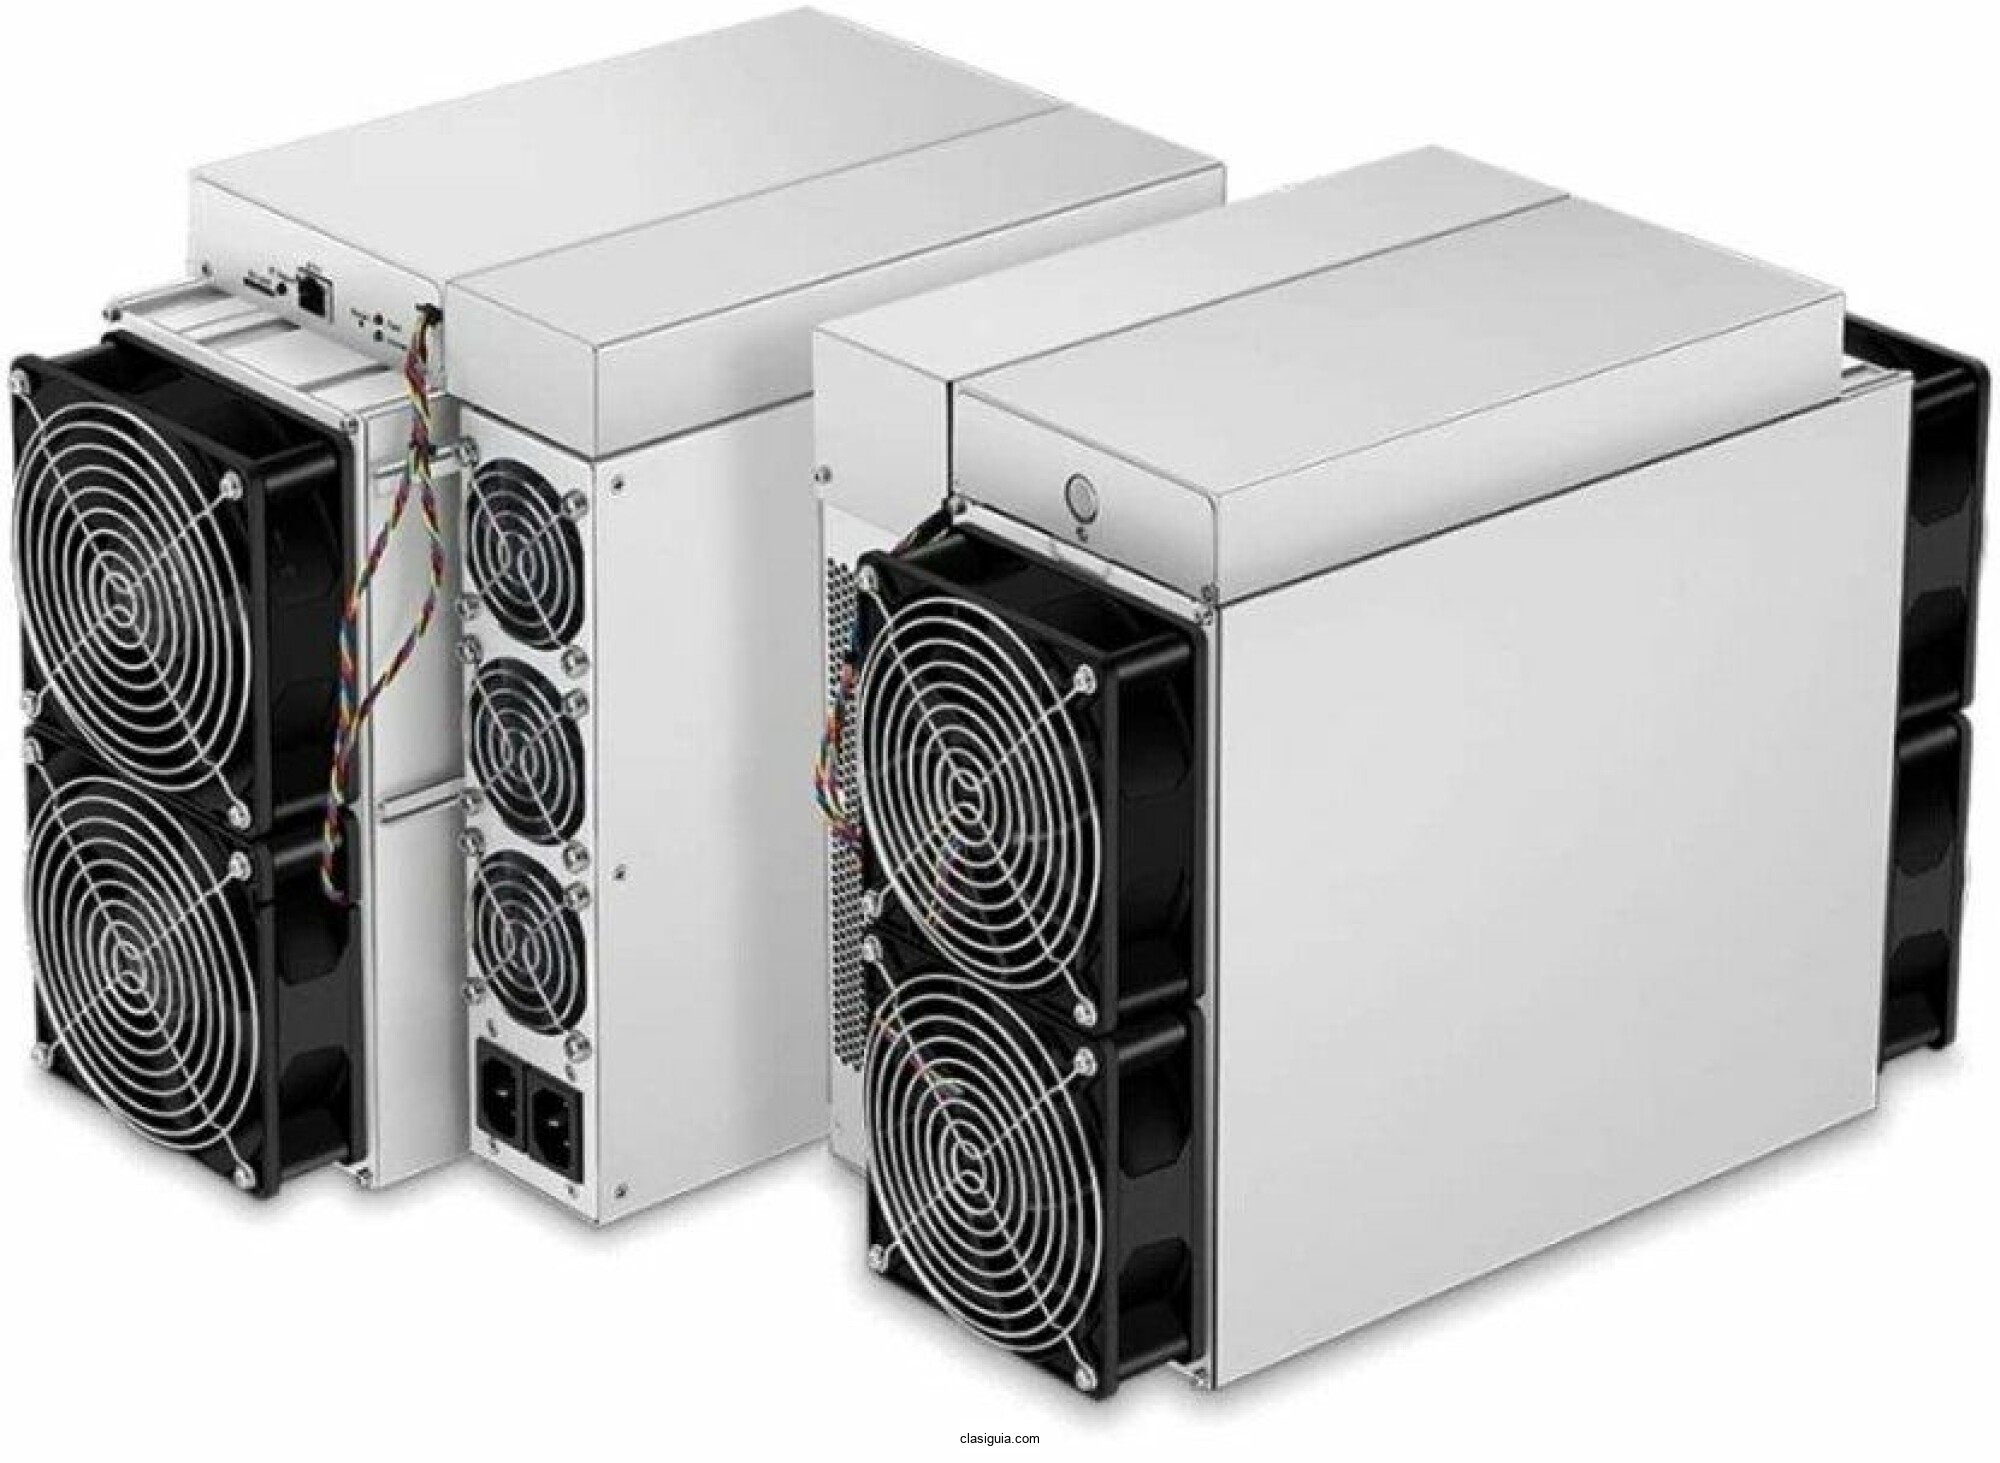 Sales offer Antminer S19 pro 110th Bitcoin Miner Include PSU Power Cords